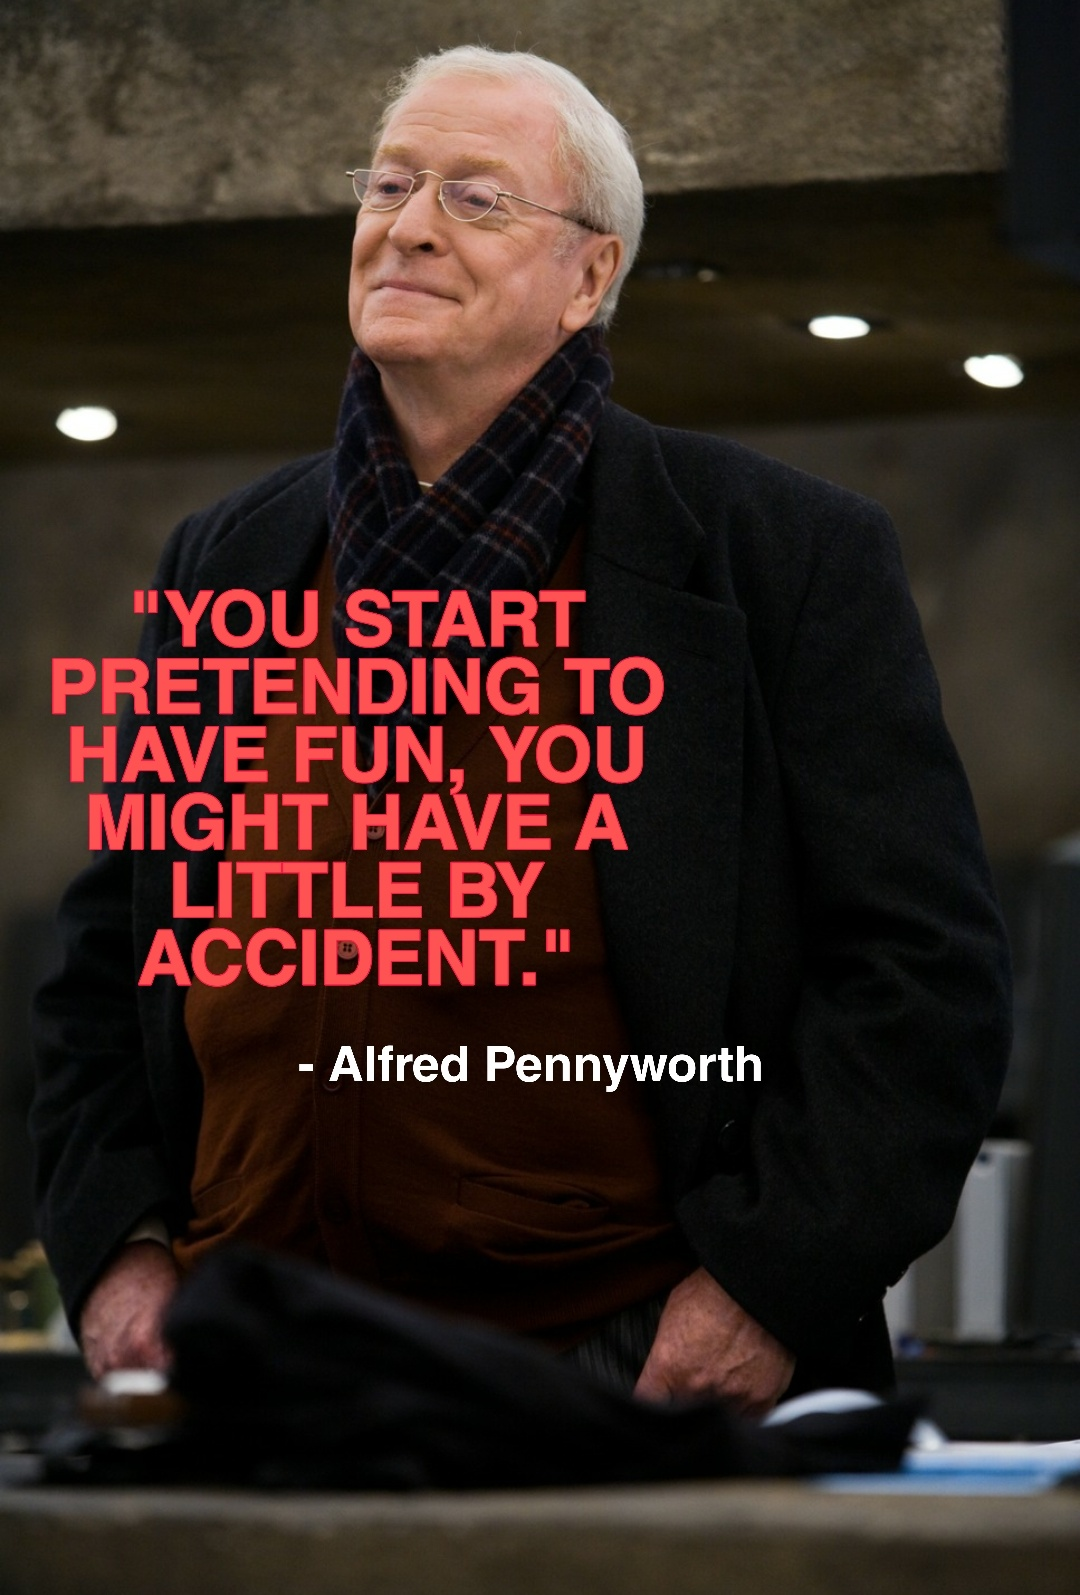 """YOU START PRETENDING TO HAVE FUN YOU MIGHT HAVEA . ' LITI'LE BY ACCIDENT."" - https://inspirational.ly"